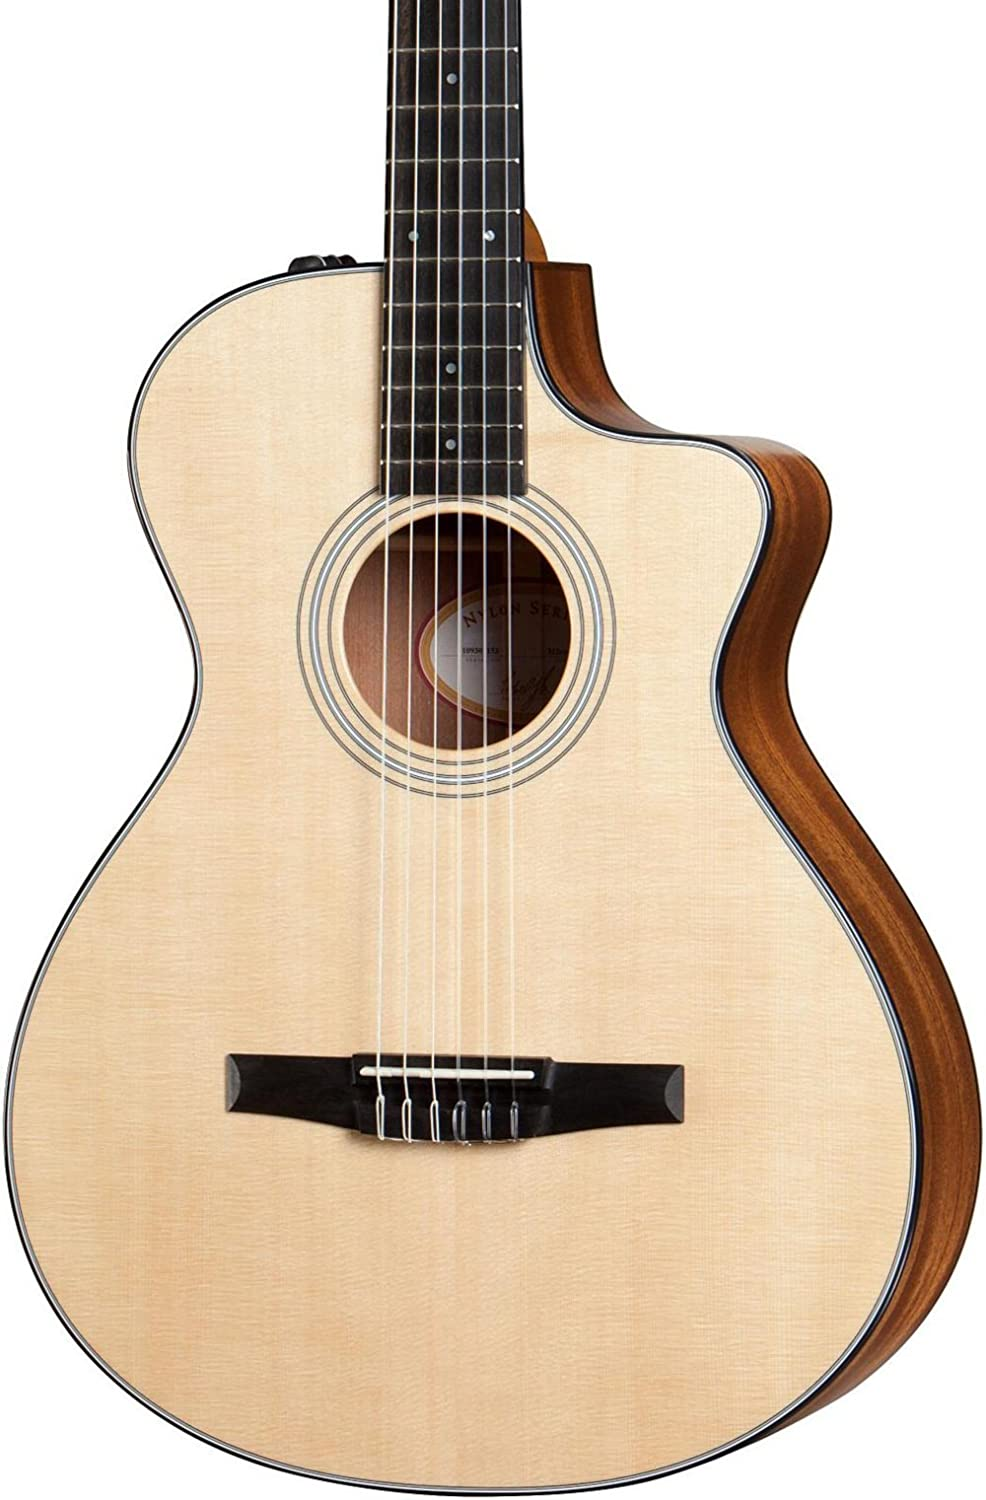 Taylor 312ce-N Nylon Max 70% OFF String Sapele Grand Concert Selling